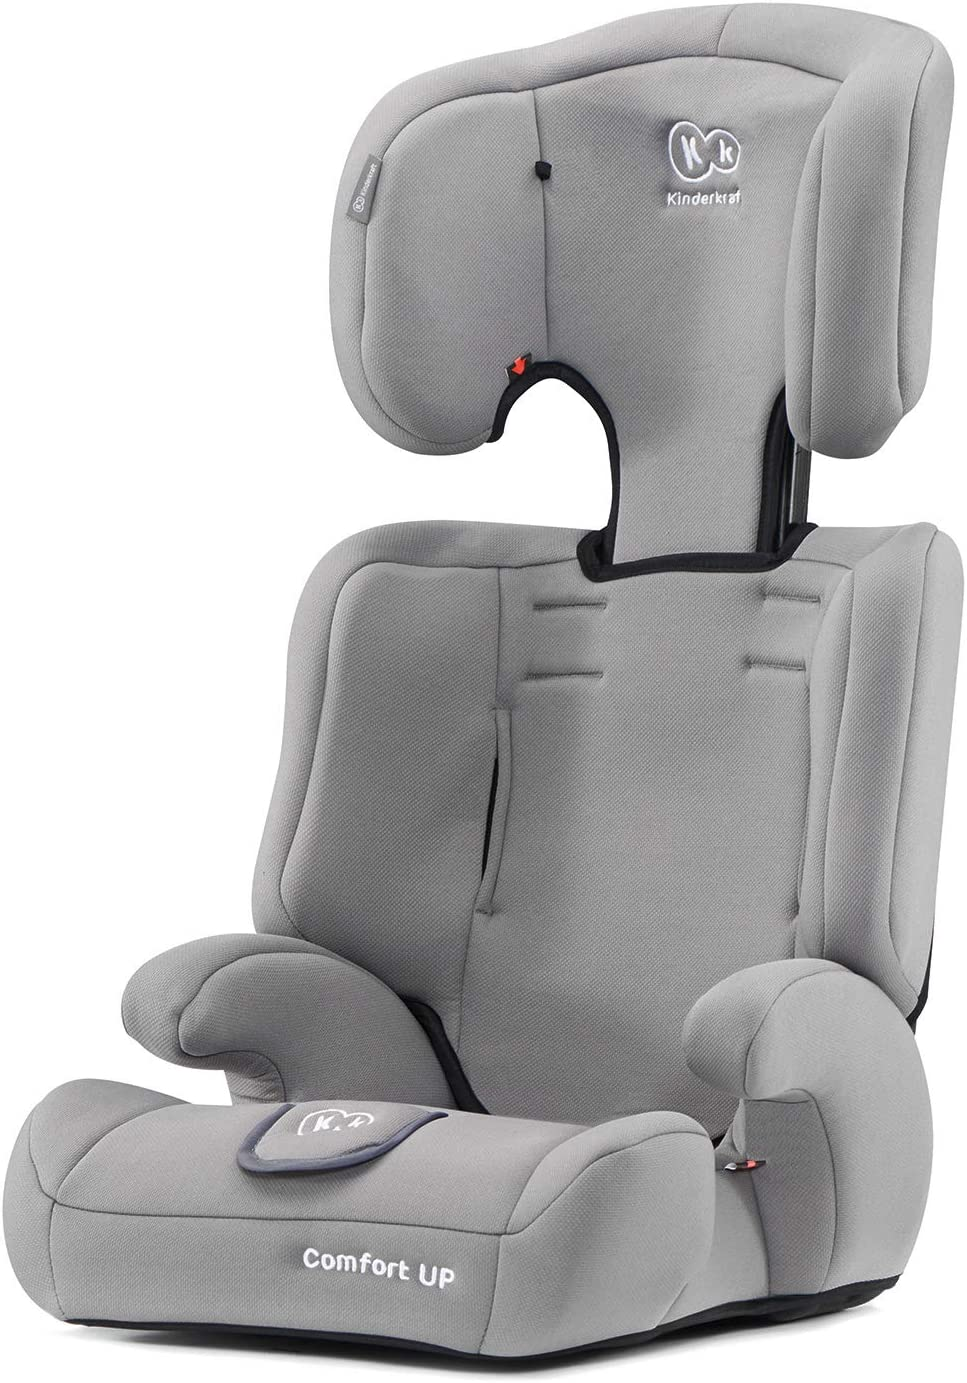 Adjustable Headrest with 5 Point Harness Infant Group 1//2//3 Navy Kinderkraft Car Seat Comfort UP Up to 12 Years Safety Certificate ECE R44//04 for Toddlers Booster Child Seat 9-36 Kg